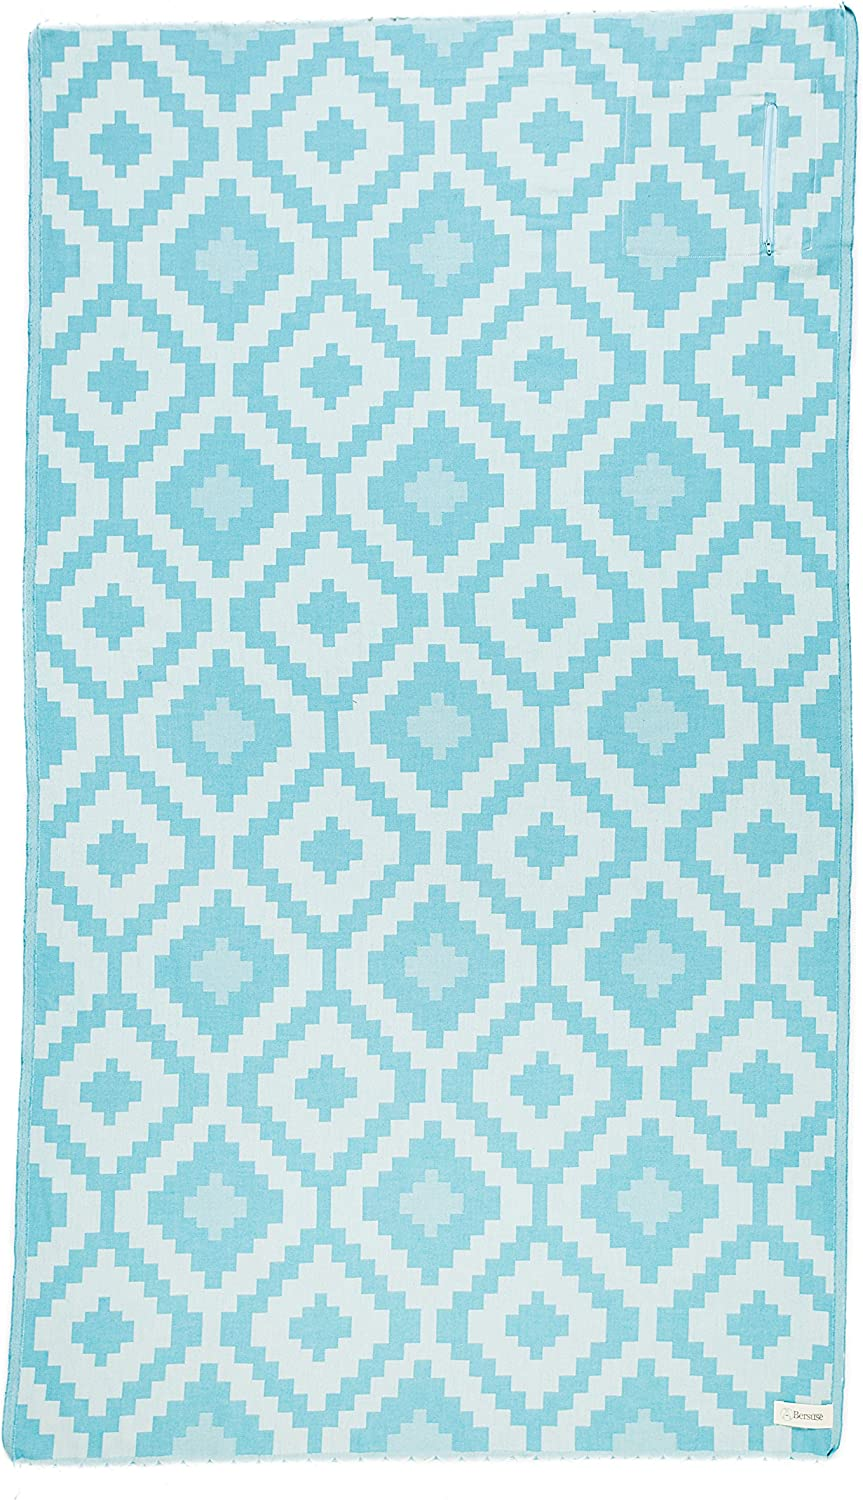 Bersuse 100% Cheap mail order specialty store Cotton Barbados Organic Towel 35% OFF Turkish 37x70 Inches